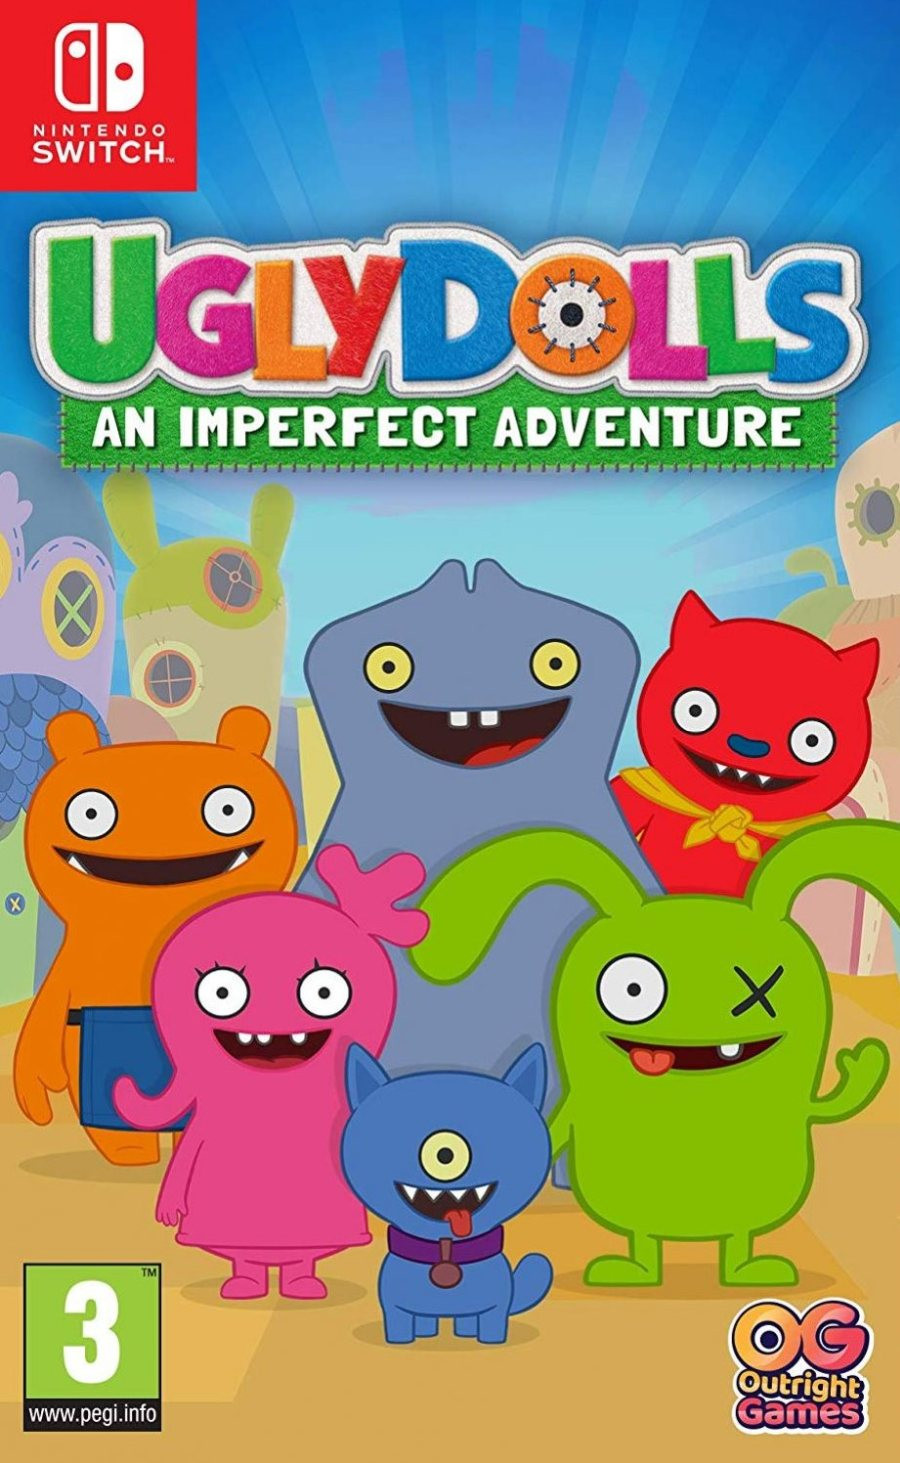 SWITCH Ugly Dolls - An Imperfect Adventure